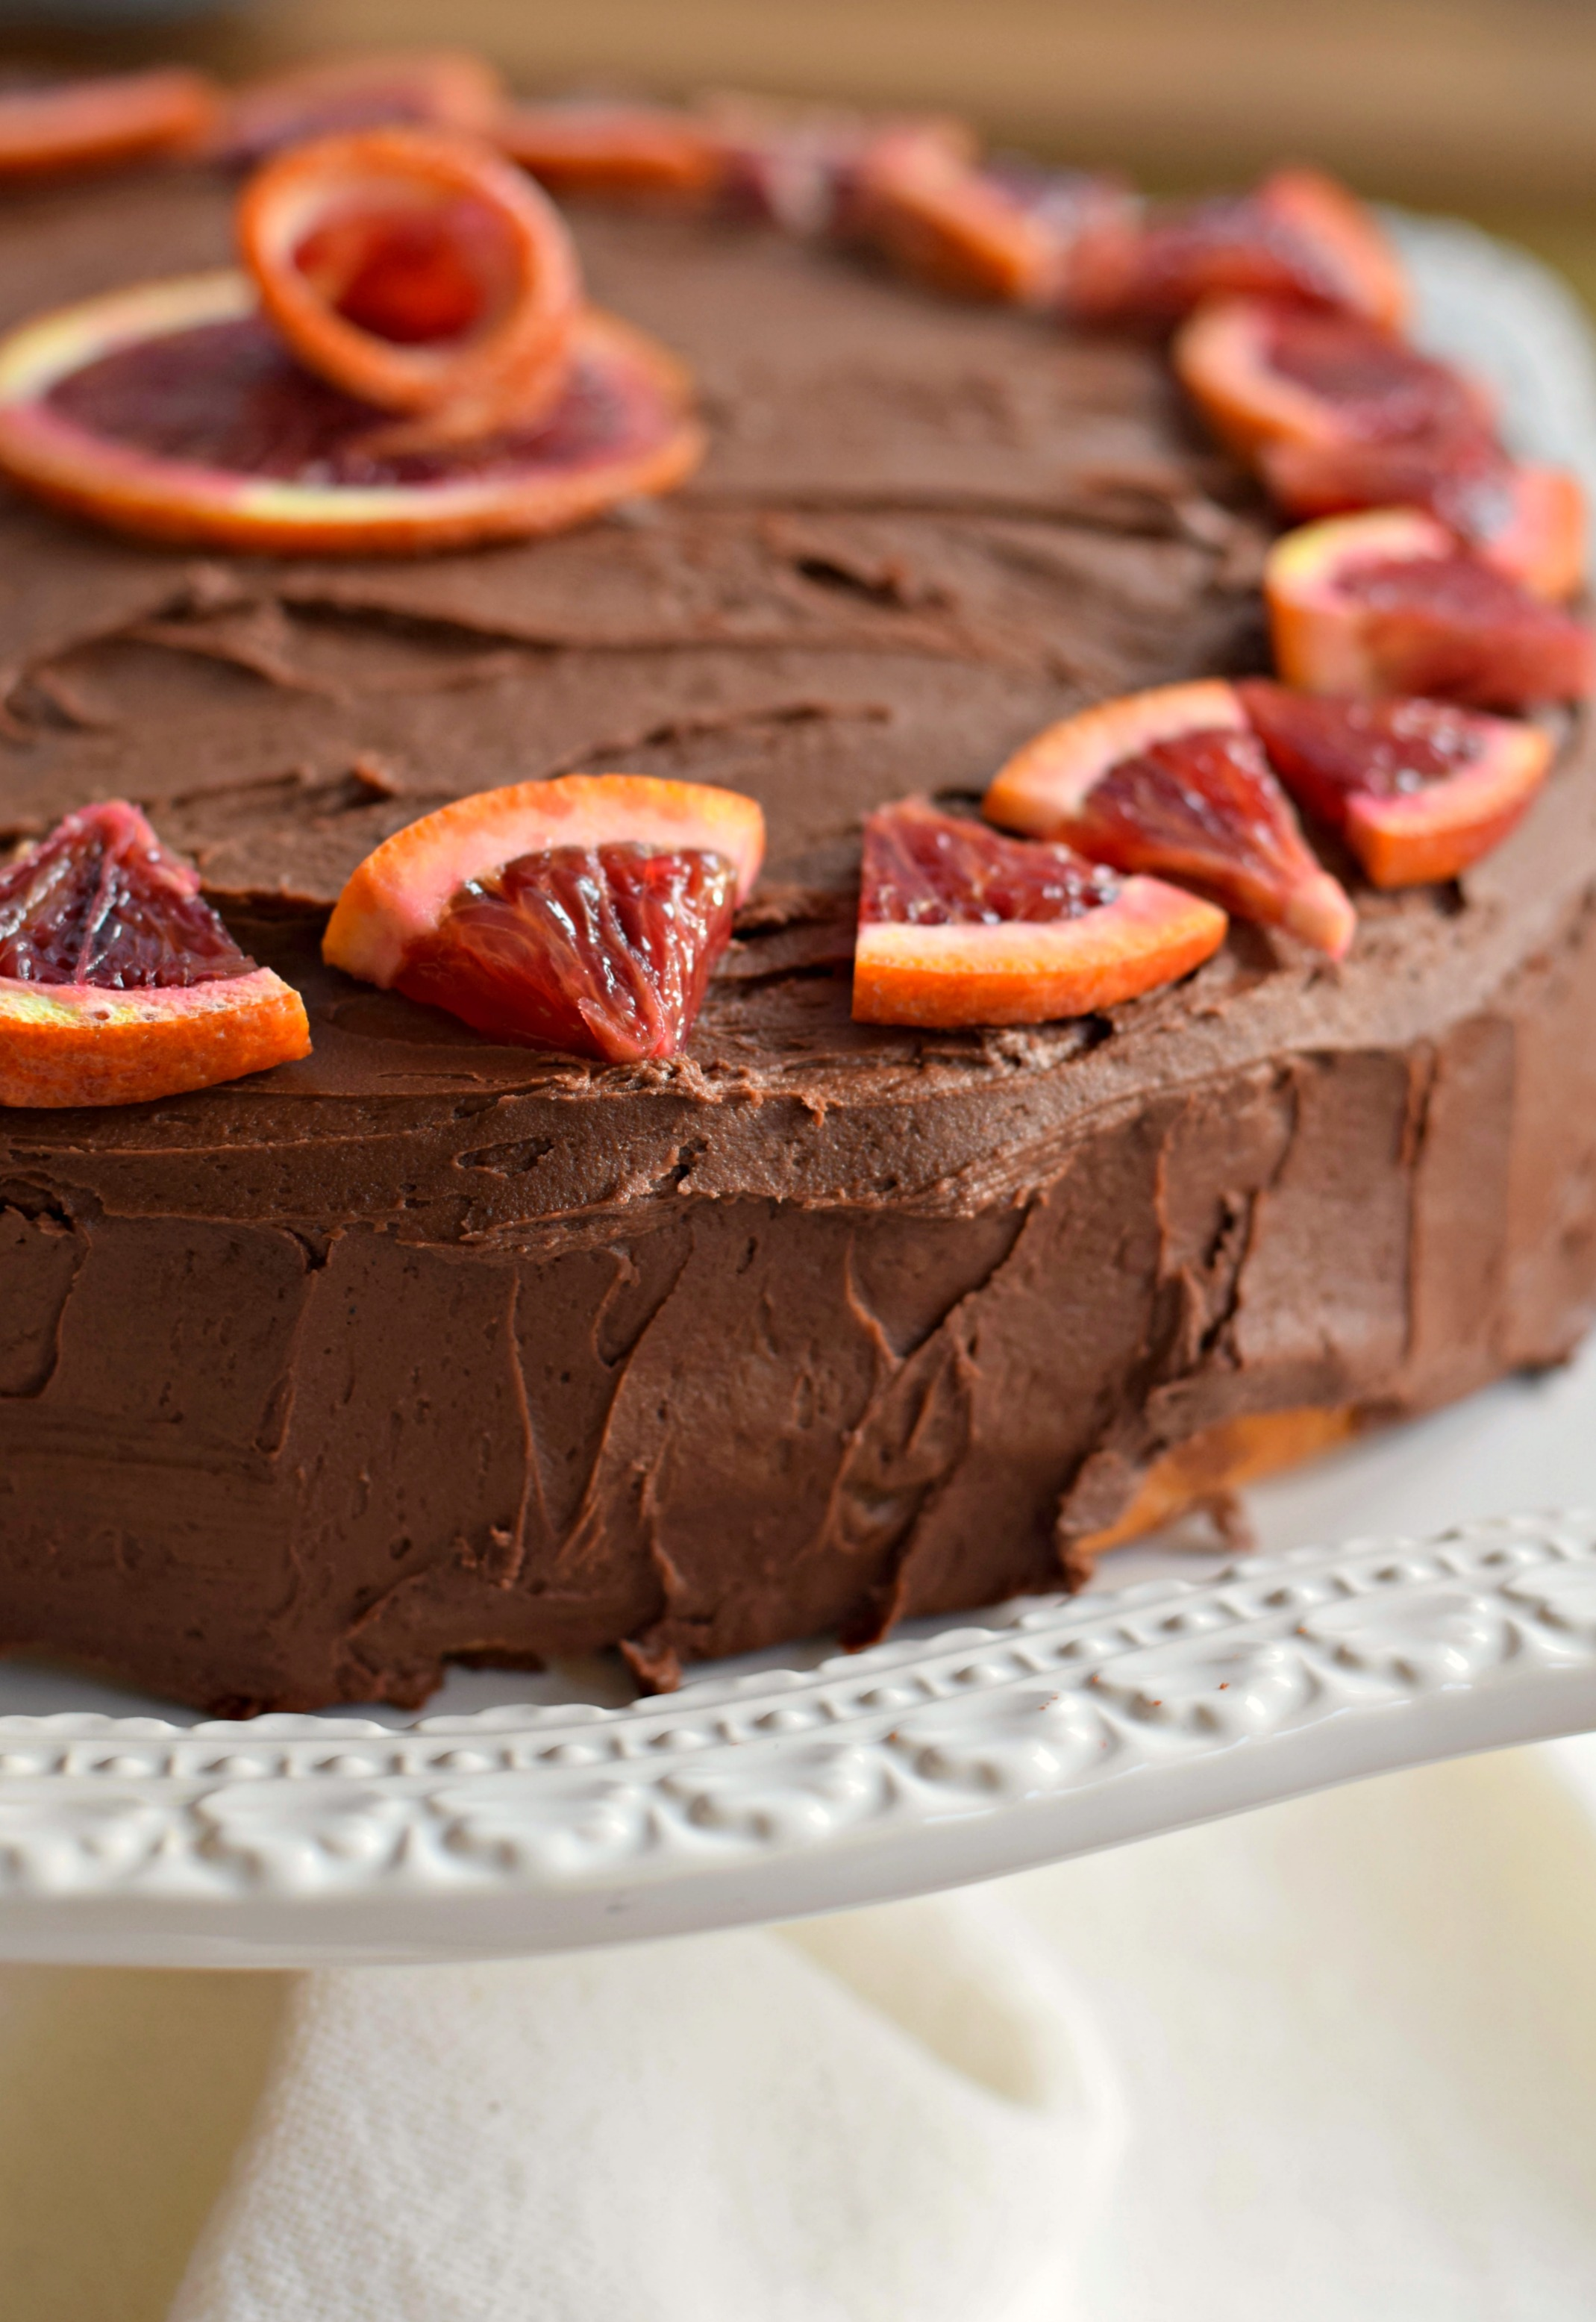 chocolate-orange-cake-decorations - West of the Loop